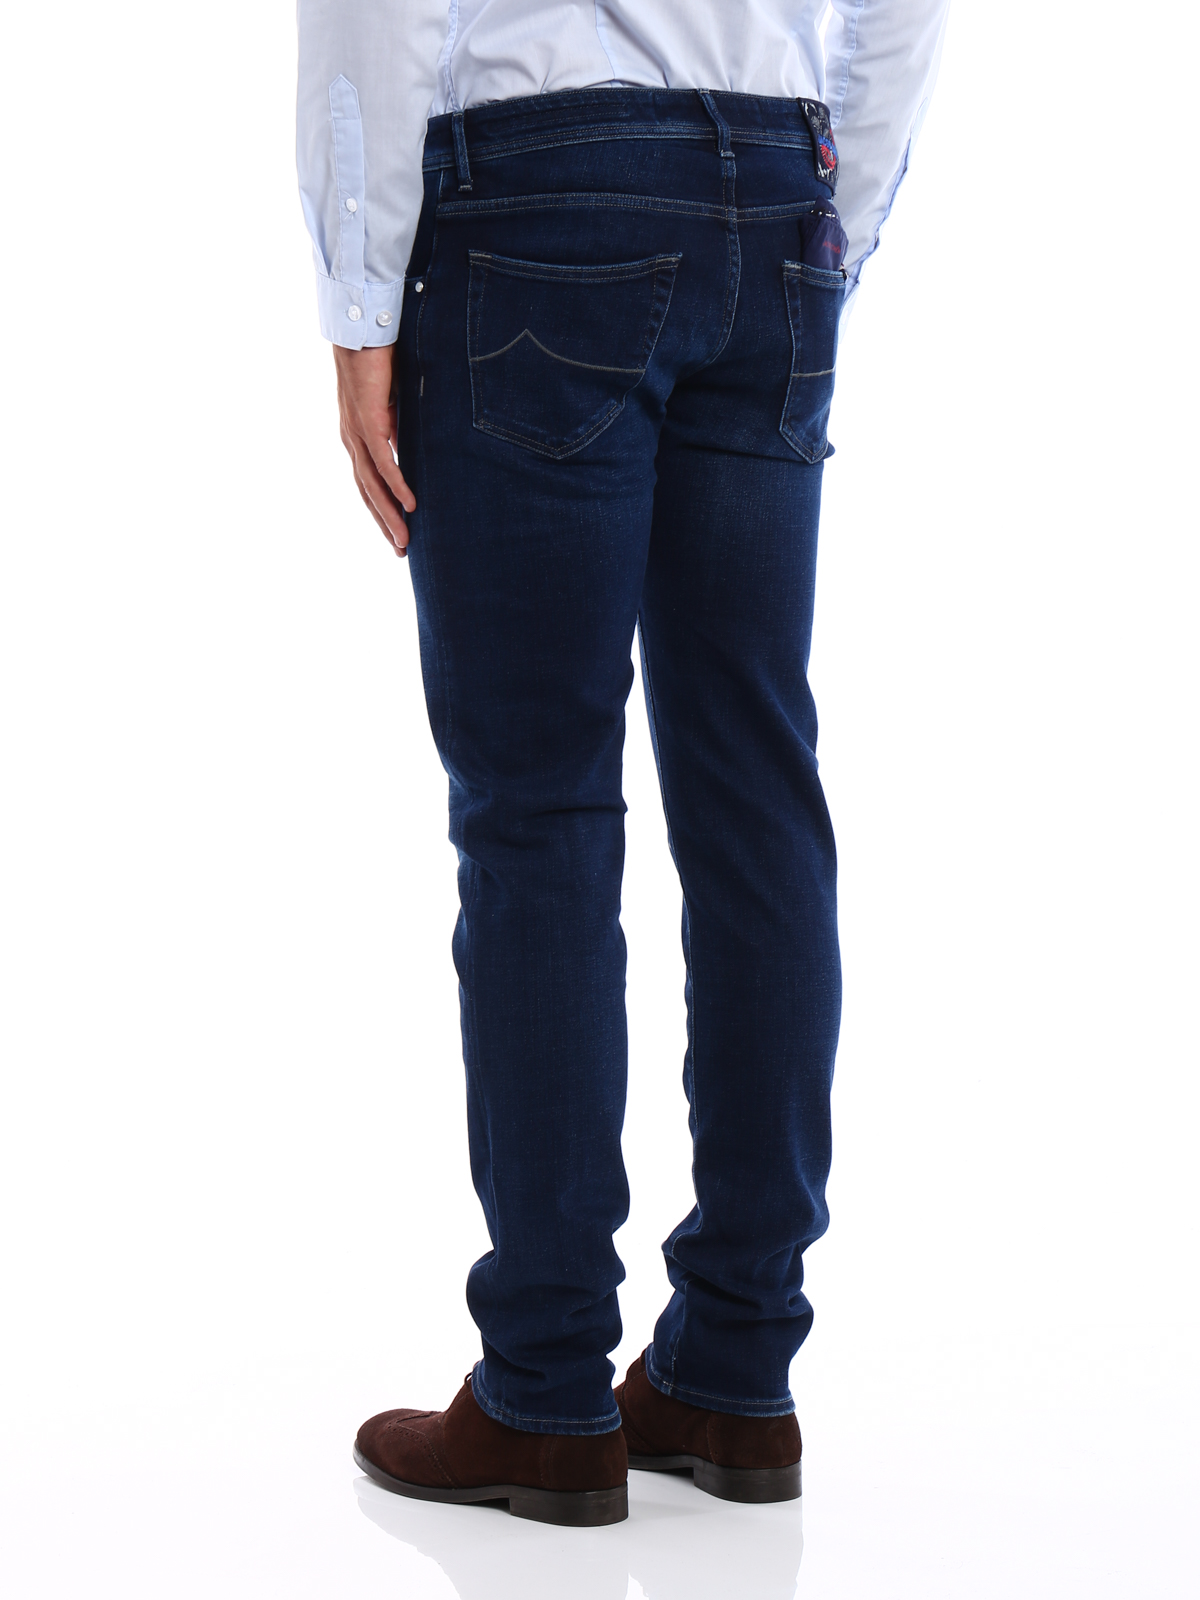 denim-style straight leg trousers - Blue Jacob Cohen Ol6bp